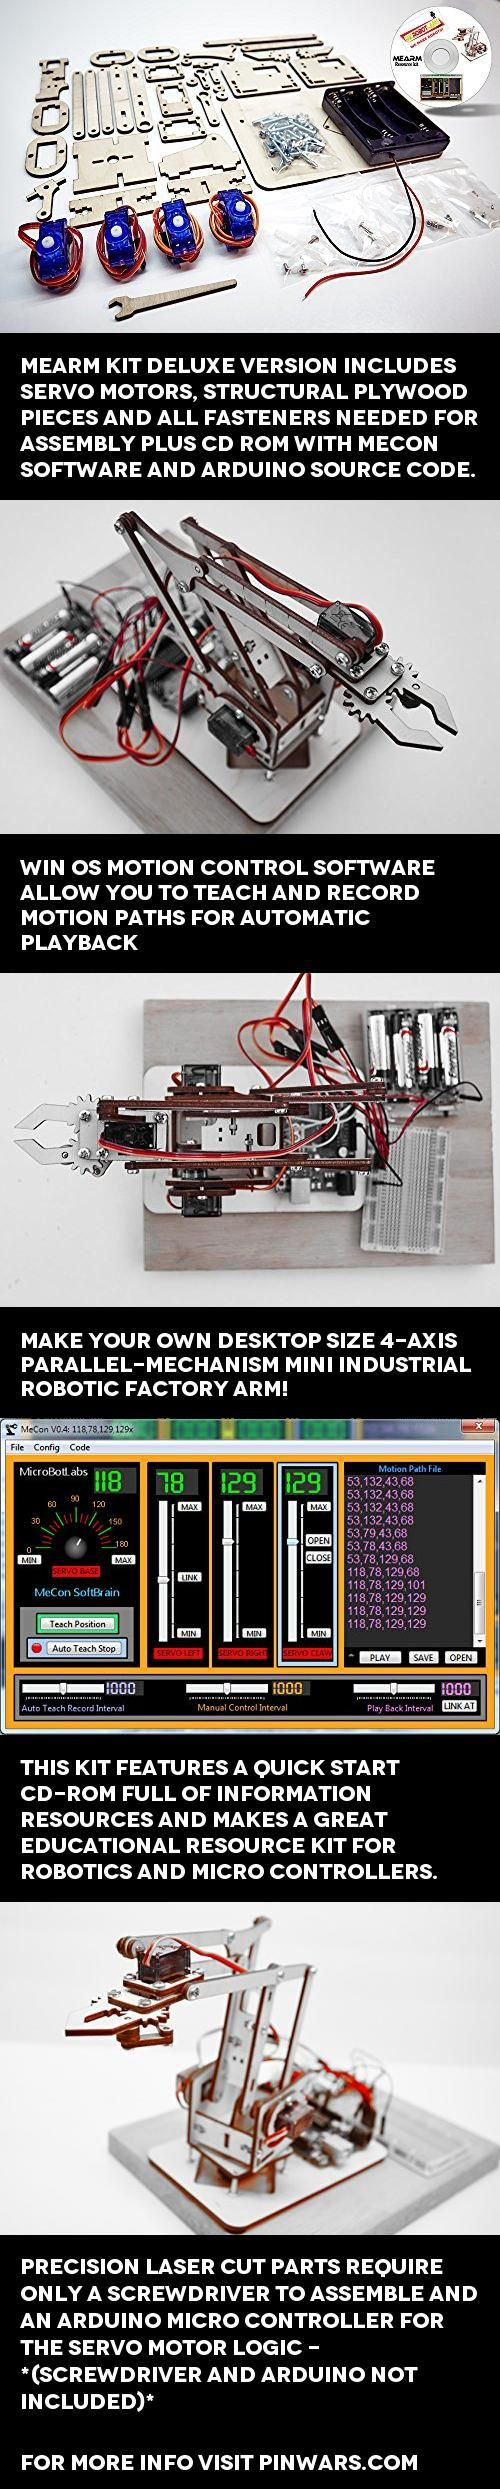 Mearm diy robot arm kit with mecon pro motion control